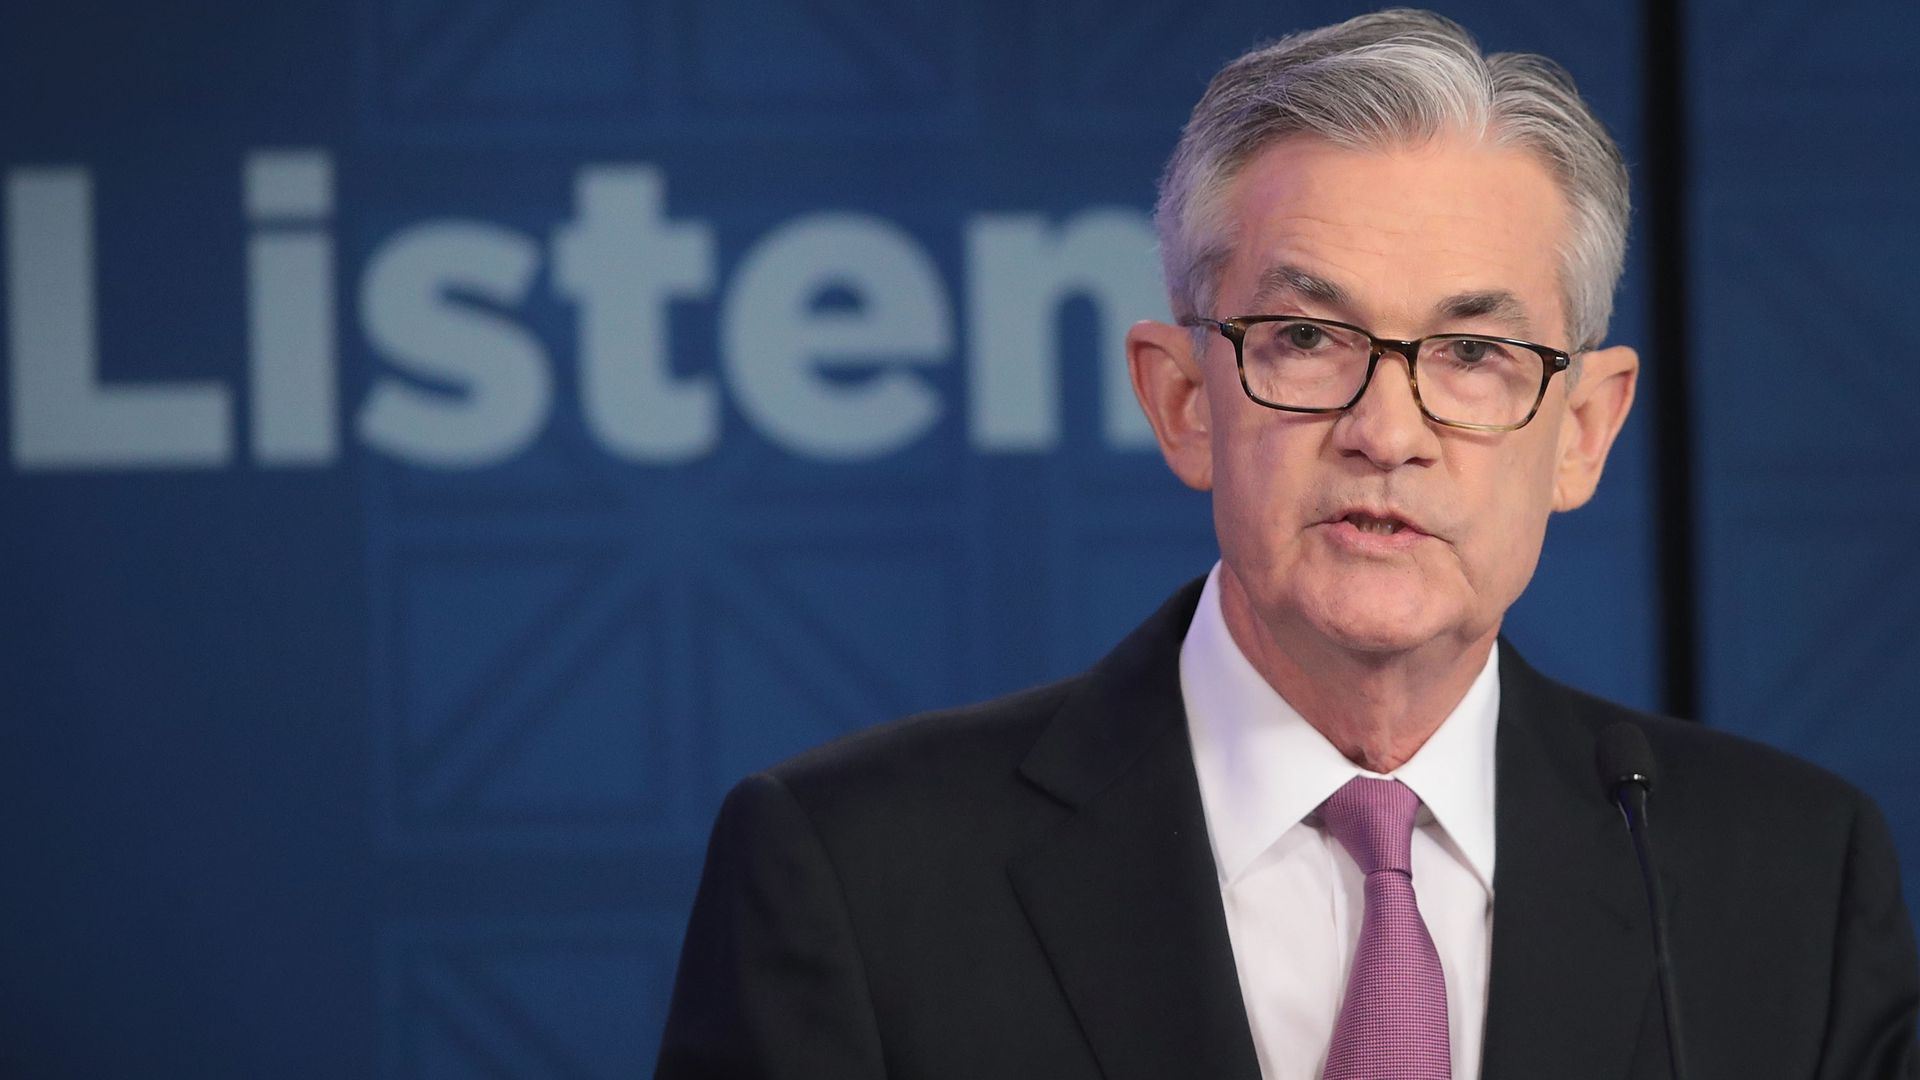 Jerome Powell, Chair, Board of Governors of the Federal Reserve speaks during a conference at the Federal Reserve Bank of Chicago.